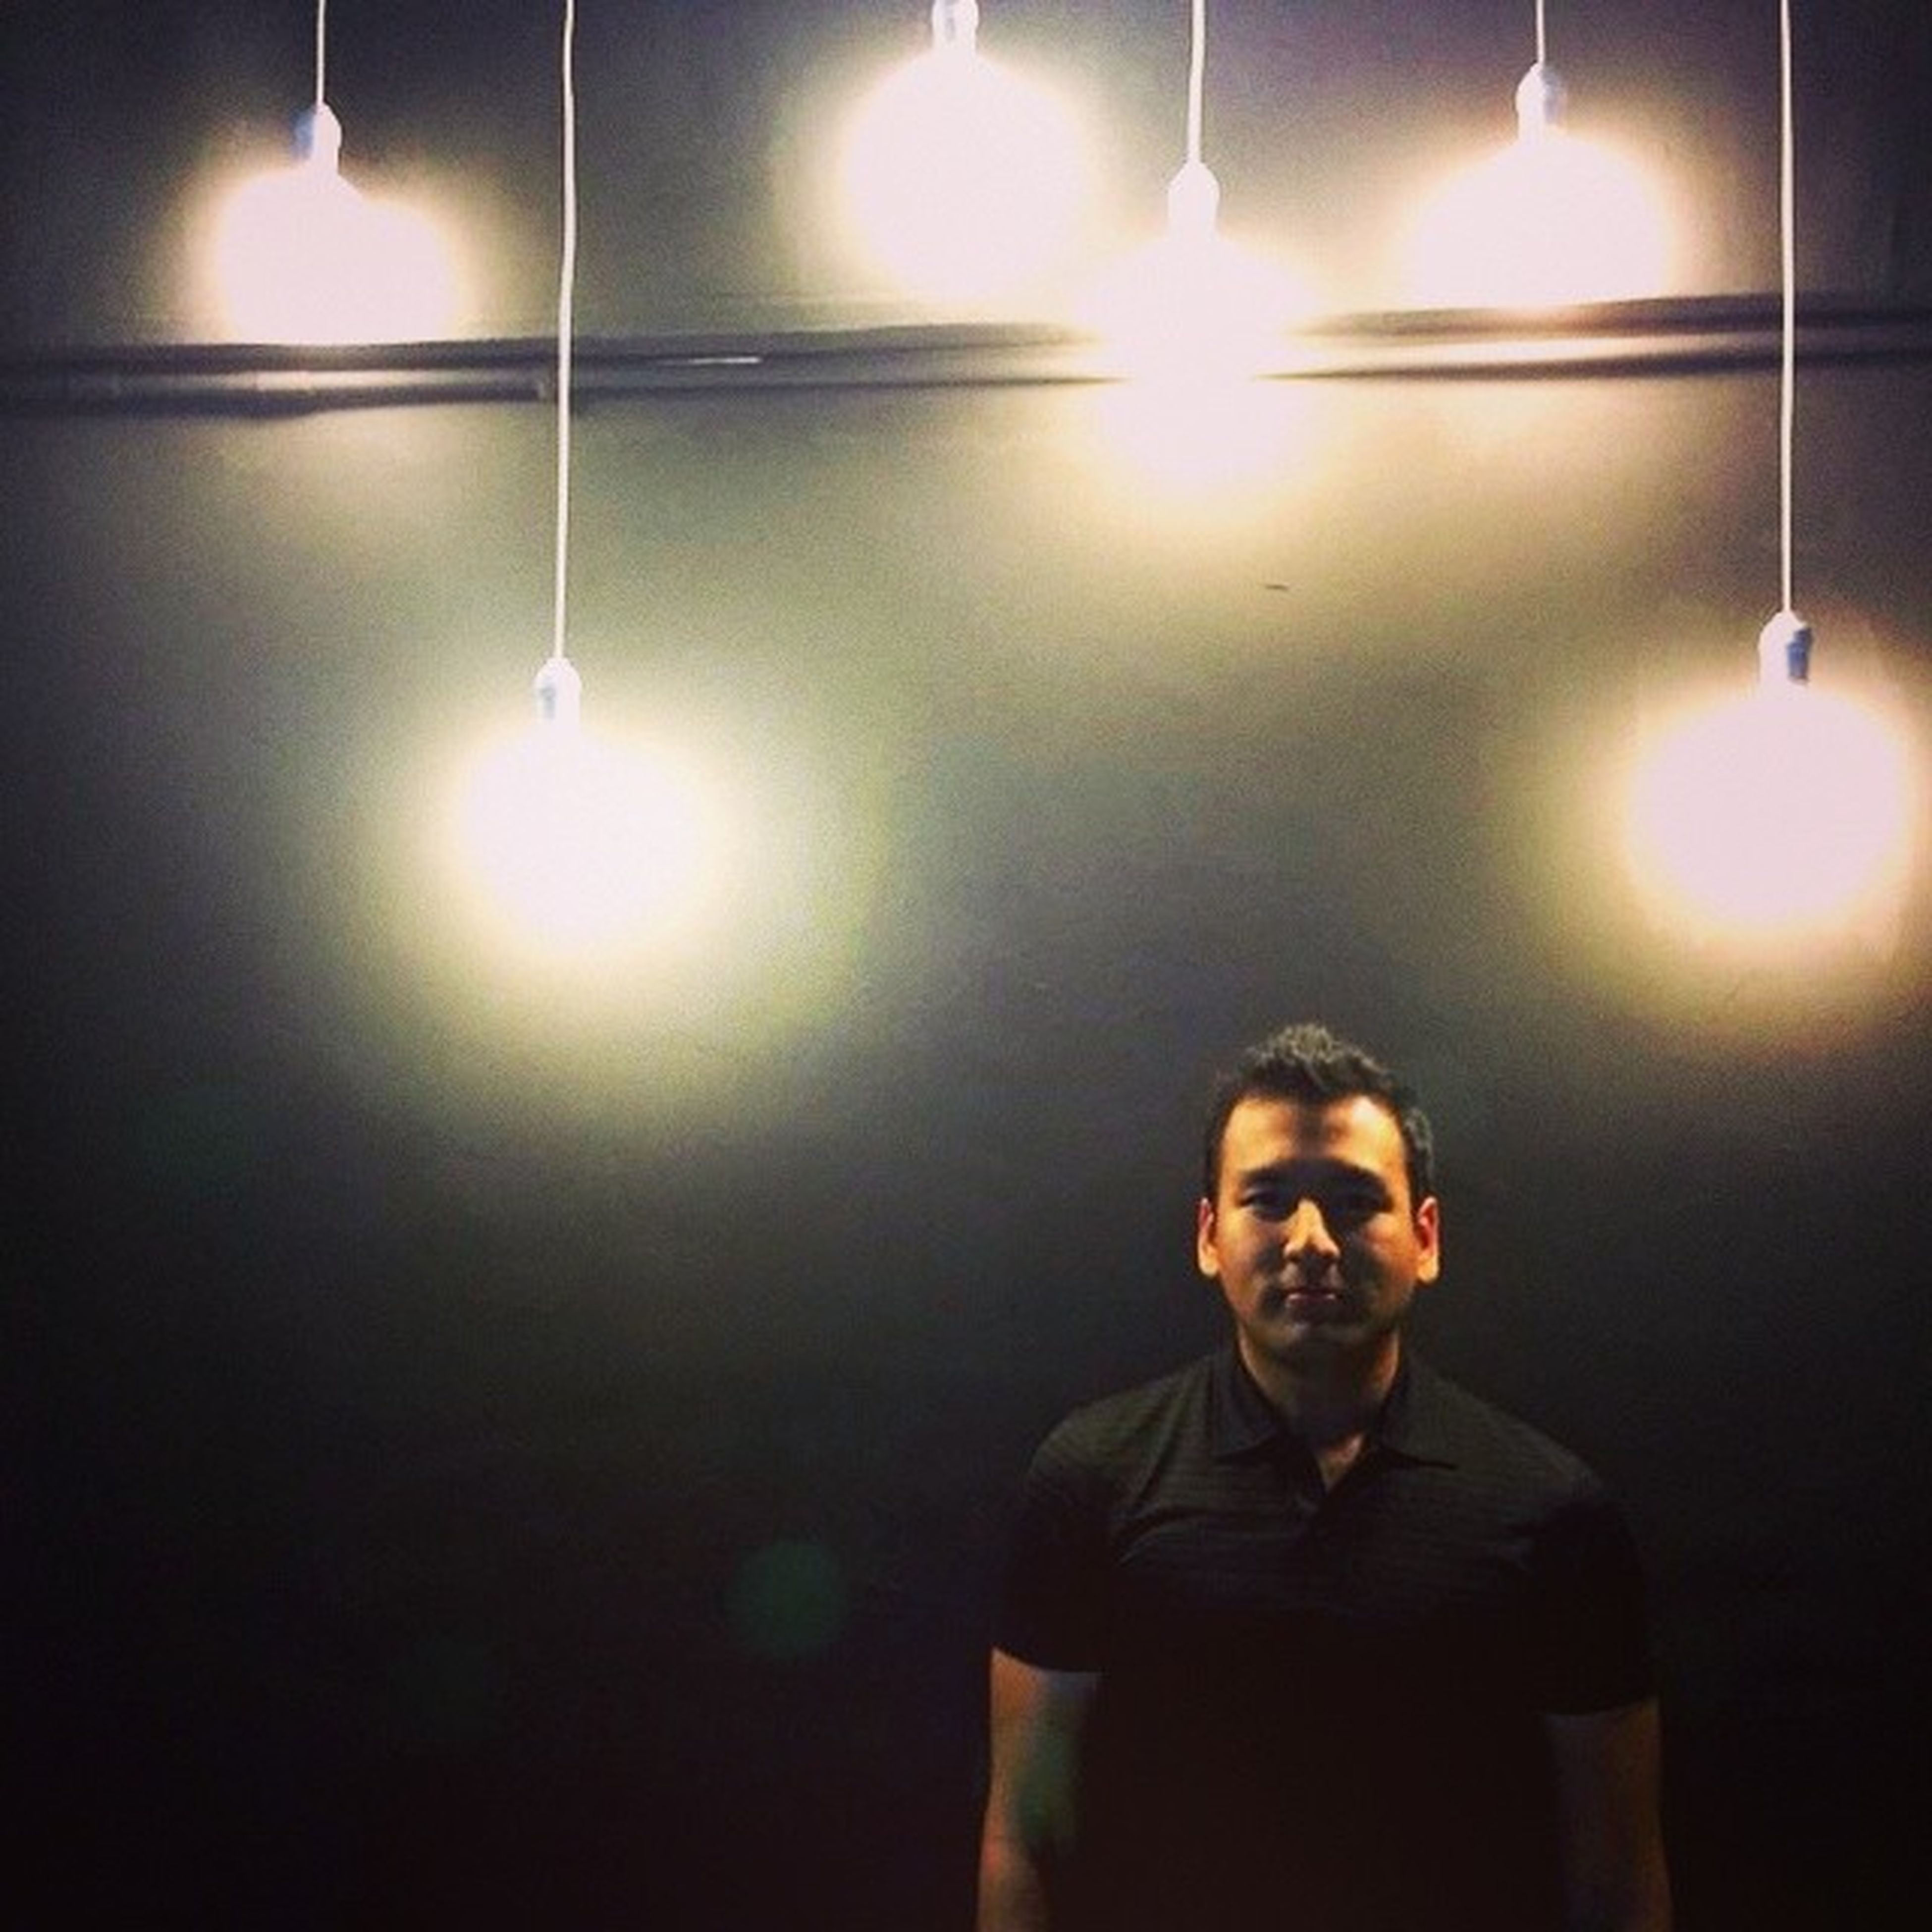 illuminated, indoors, lighting equipment, lifestyles, glowing, sun, lens flare, standing, leisure activity, sunbeam, candle, light - natural phenomenon, night, front view, men, electric light, wall - building feature, lit